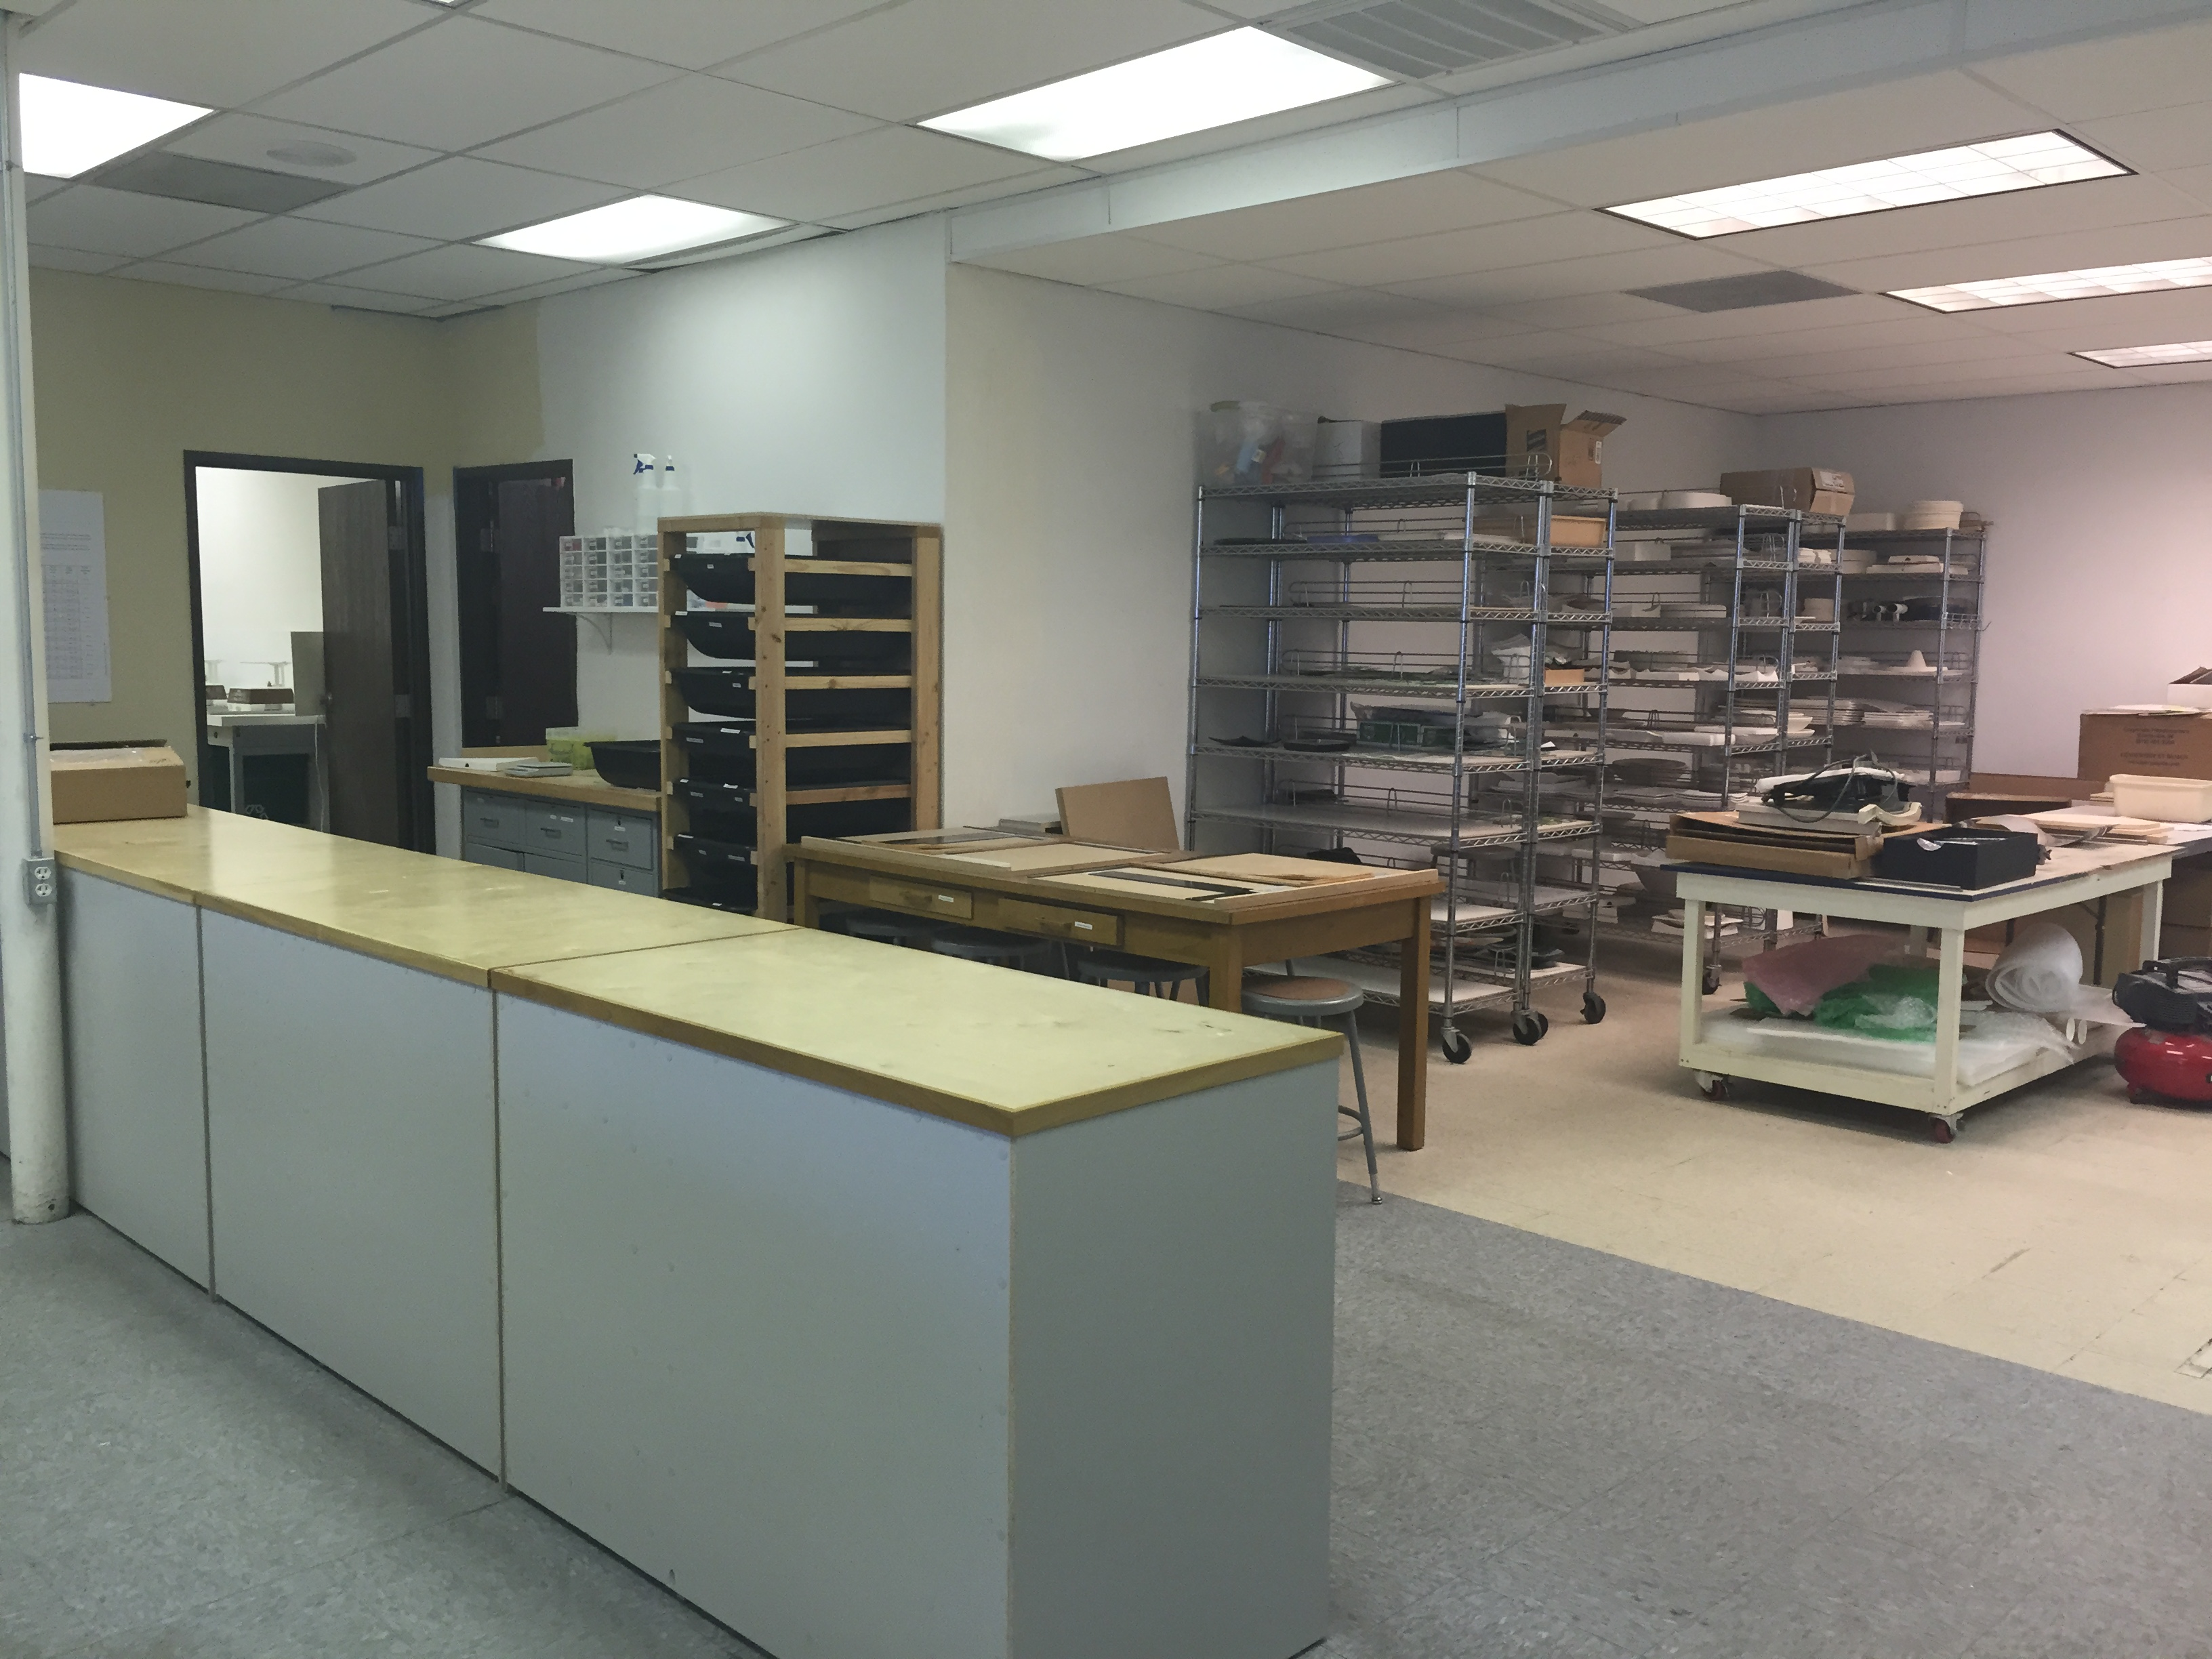 Racks with various molds and student tables